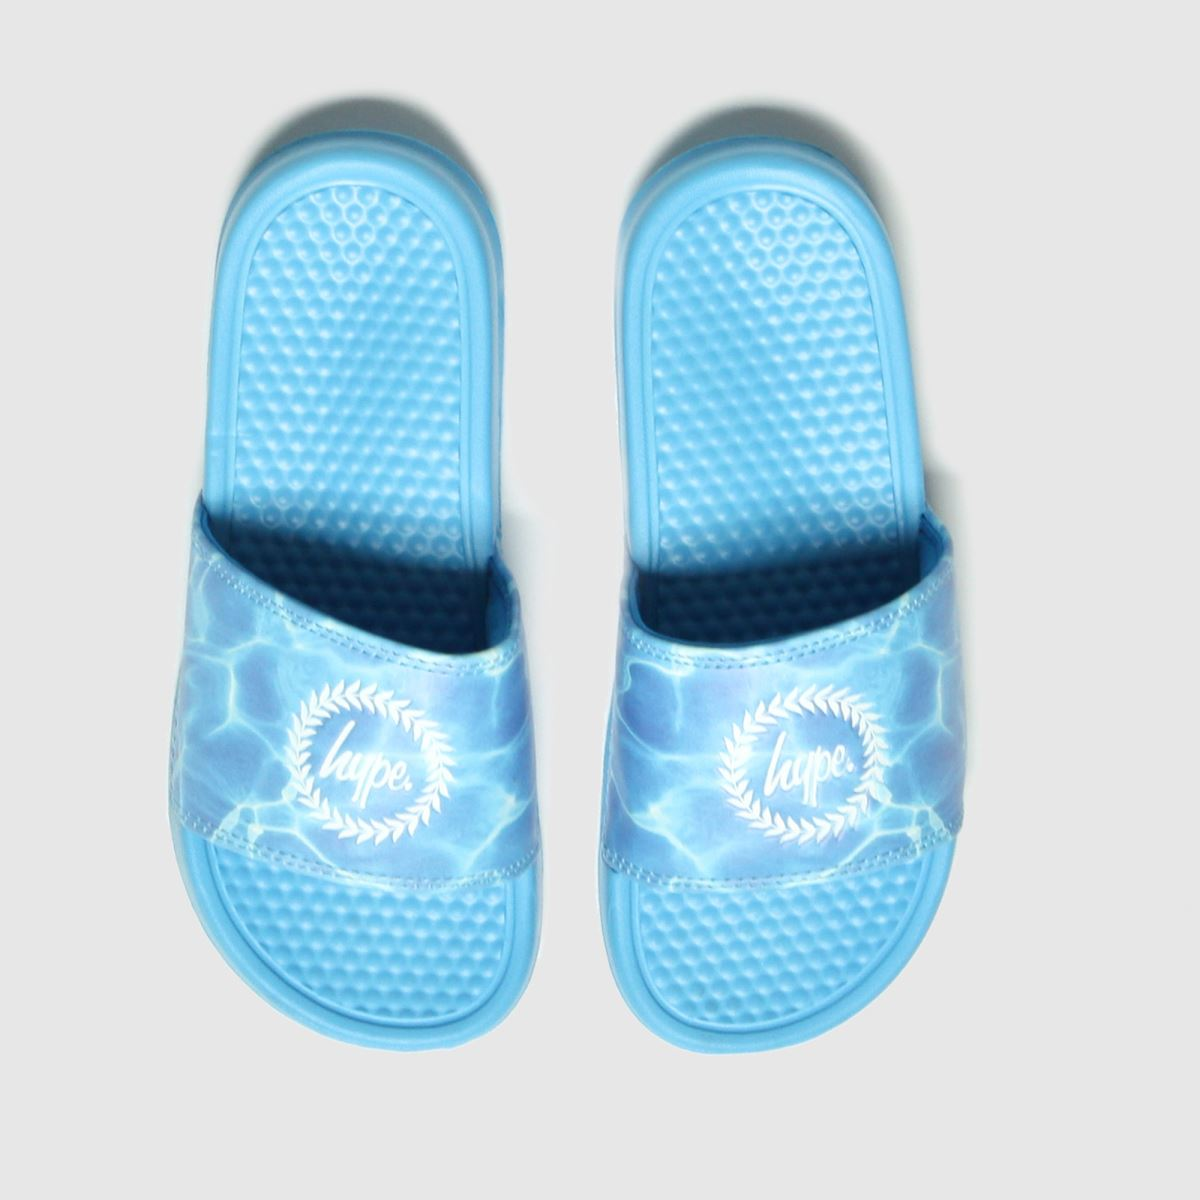 Hype Blue Pool Crest Sliders Trainers Youth